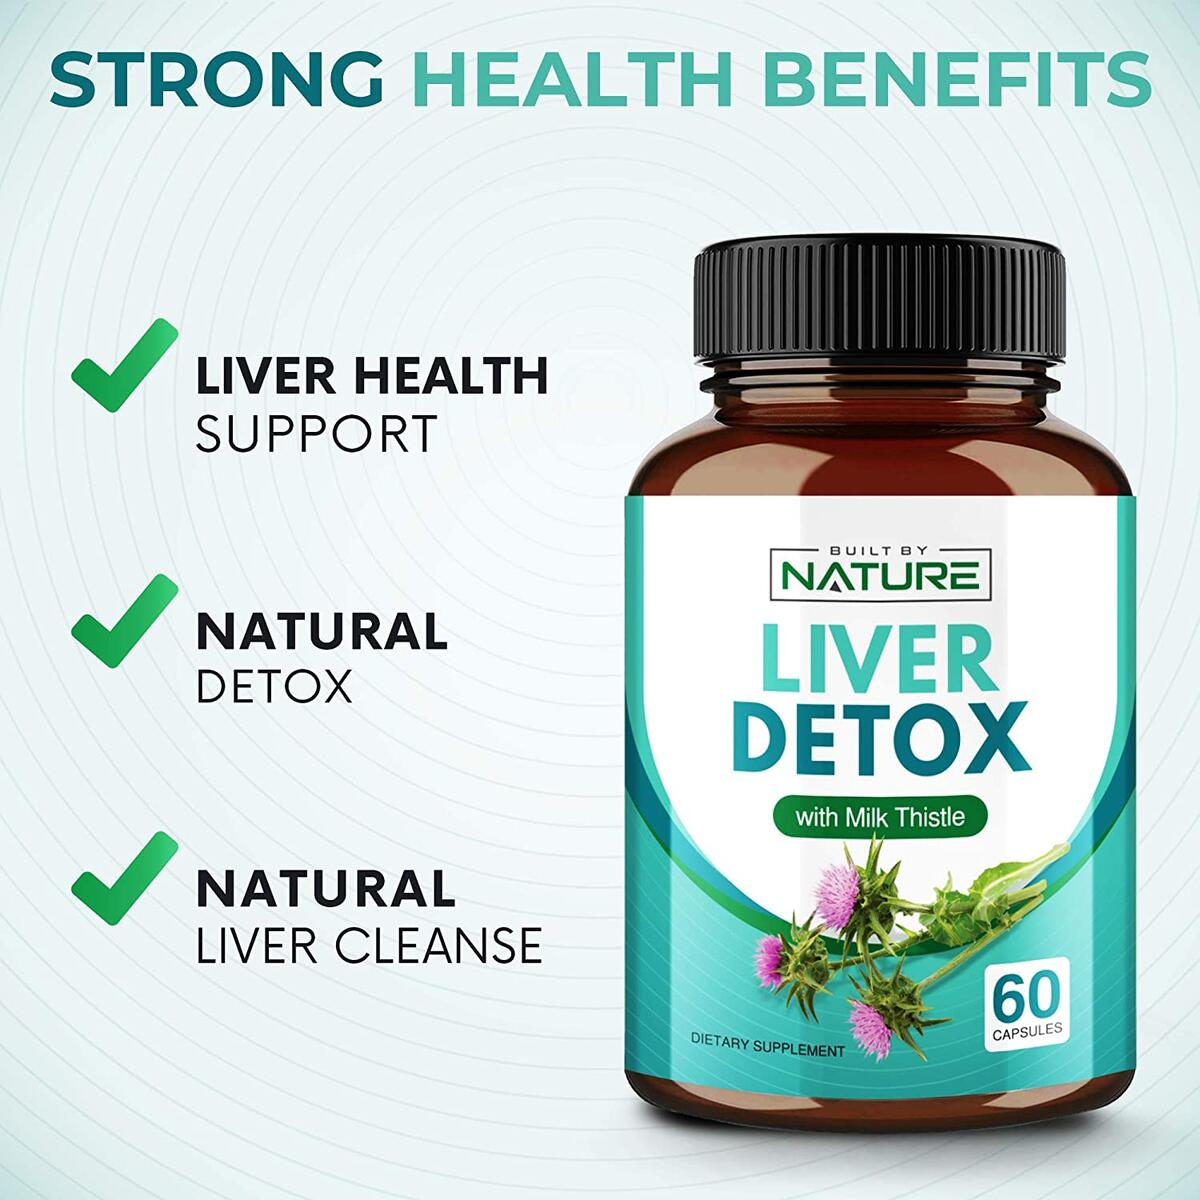 Liver Detox Supplement with Milk Thistle for Liver Cleanse Support, 60 Capsules (30 Day Supply)